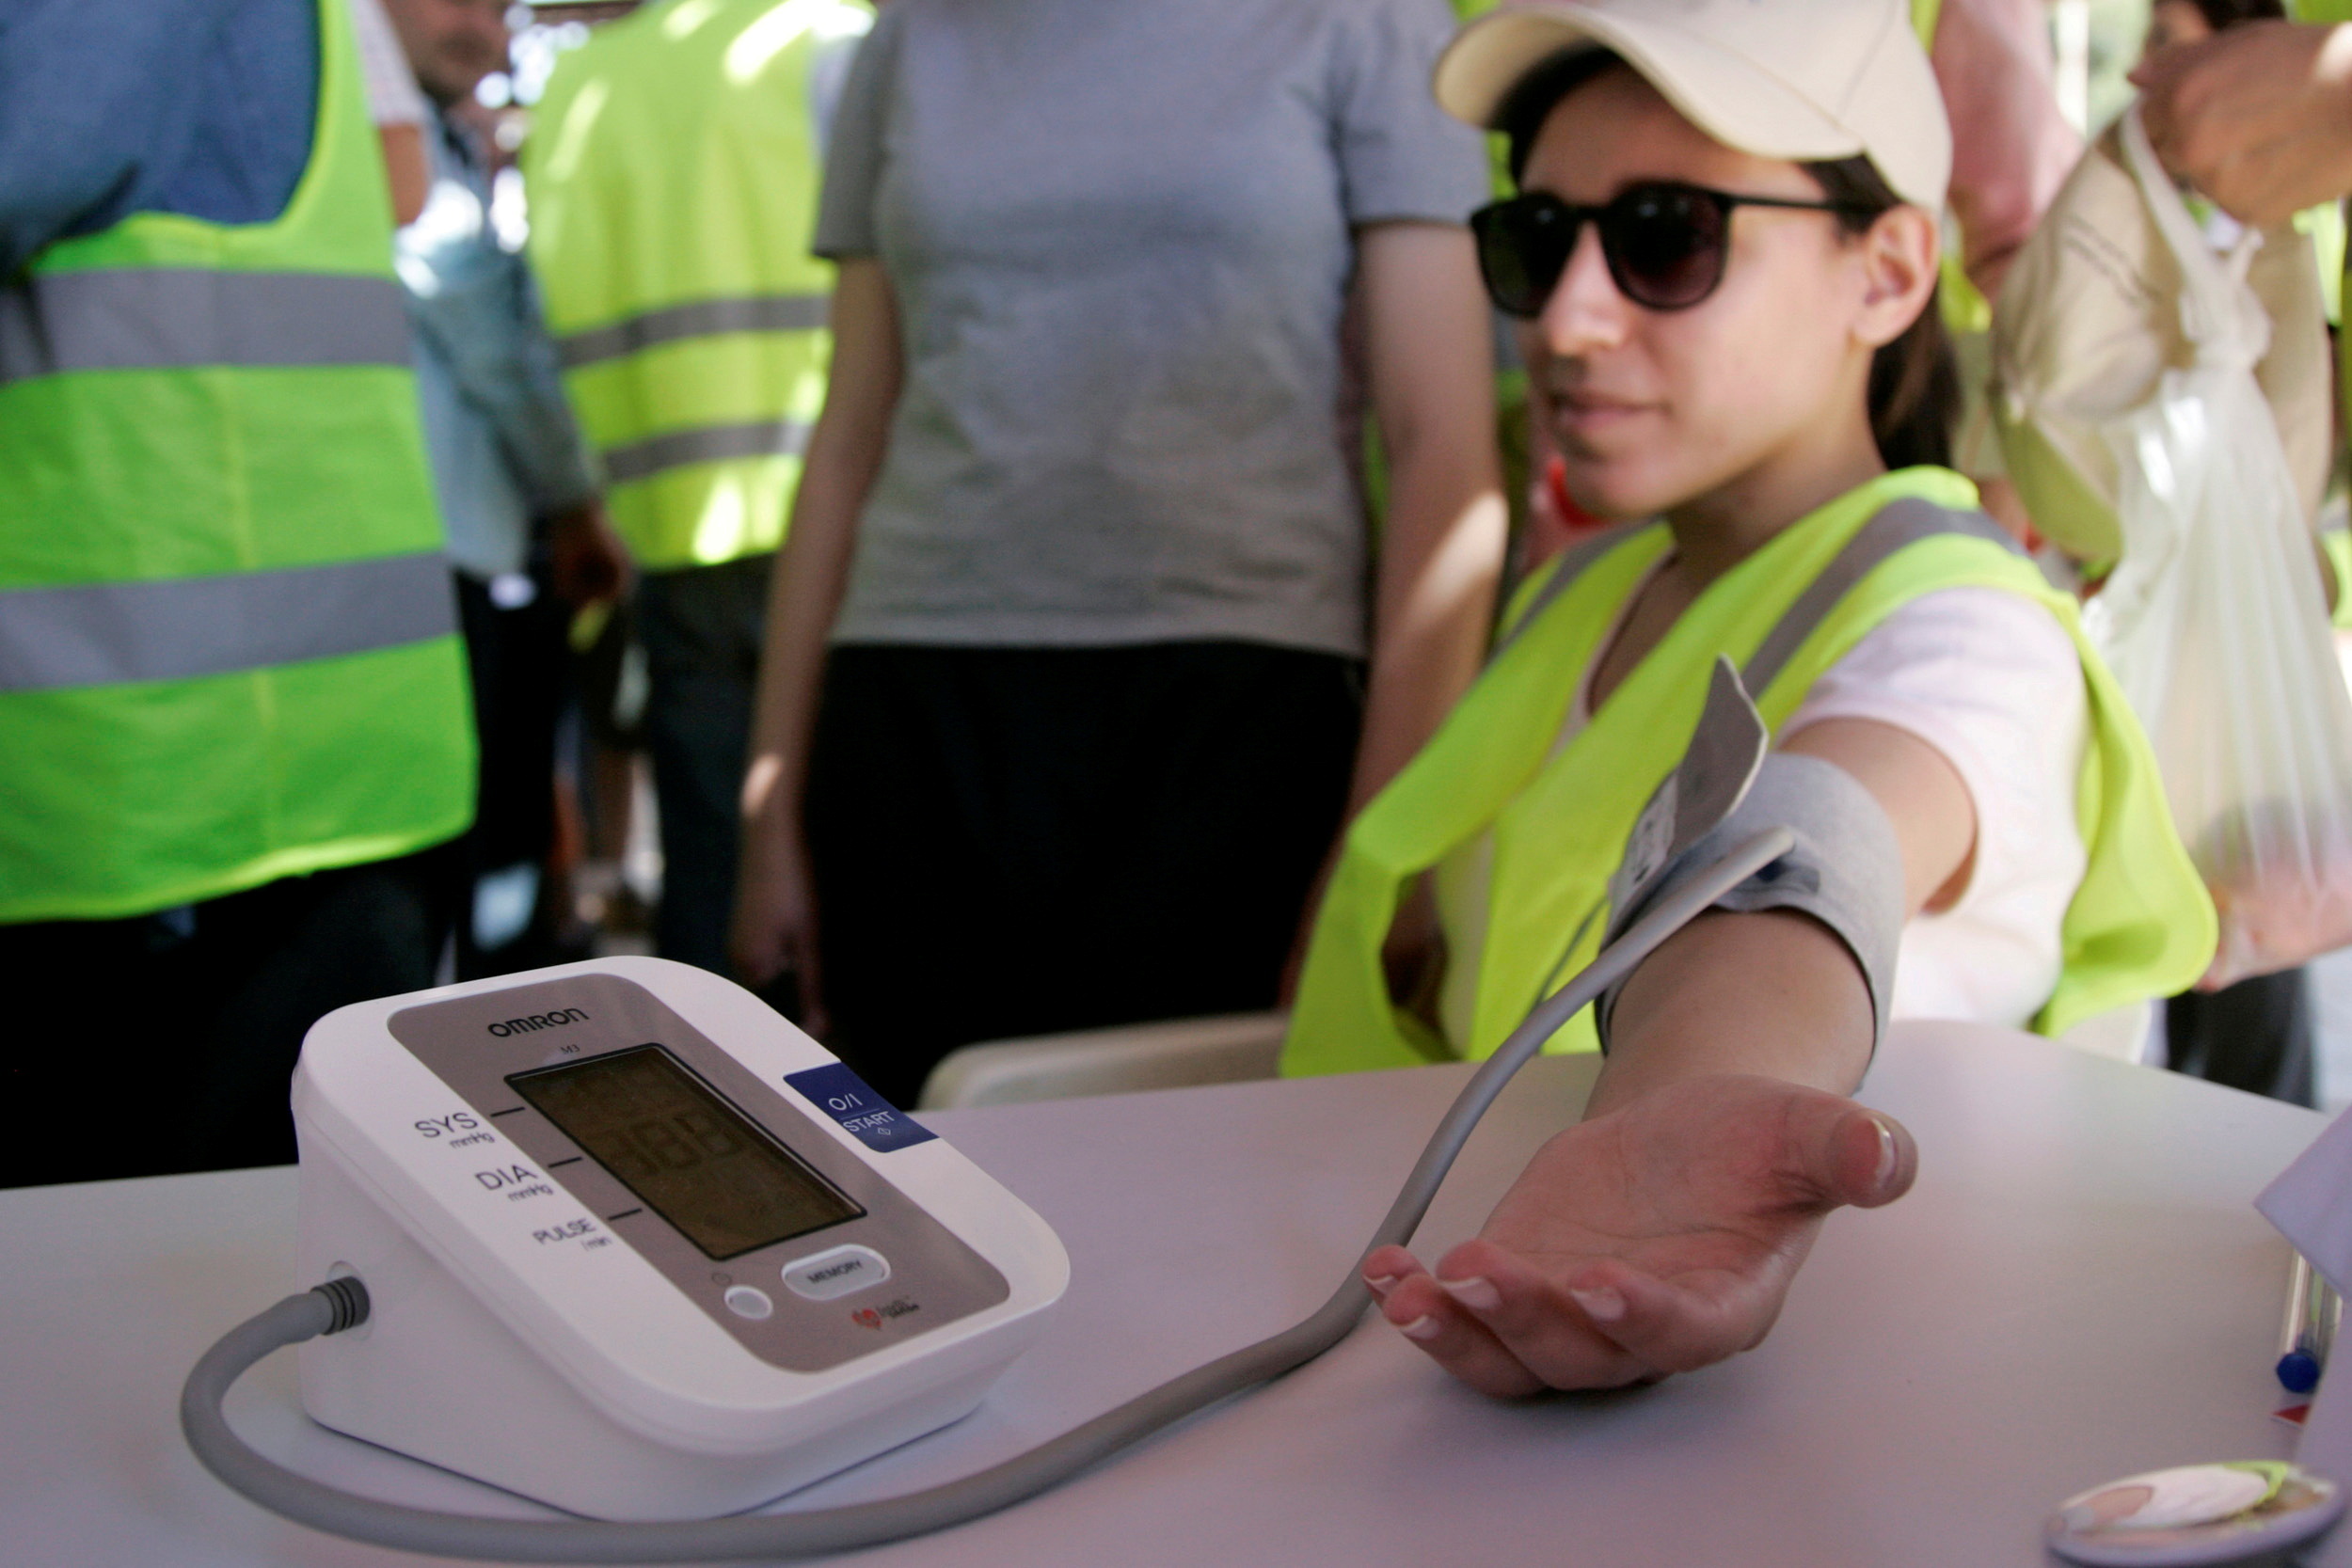 FILE PHOTO: A woman has her blood pressure taken at a World Hypertension Day event in Amman May 14, 2010. REUTERS/Muhammad Hamed/File Photo/File Photo